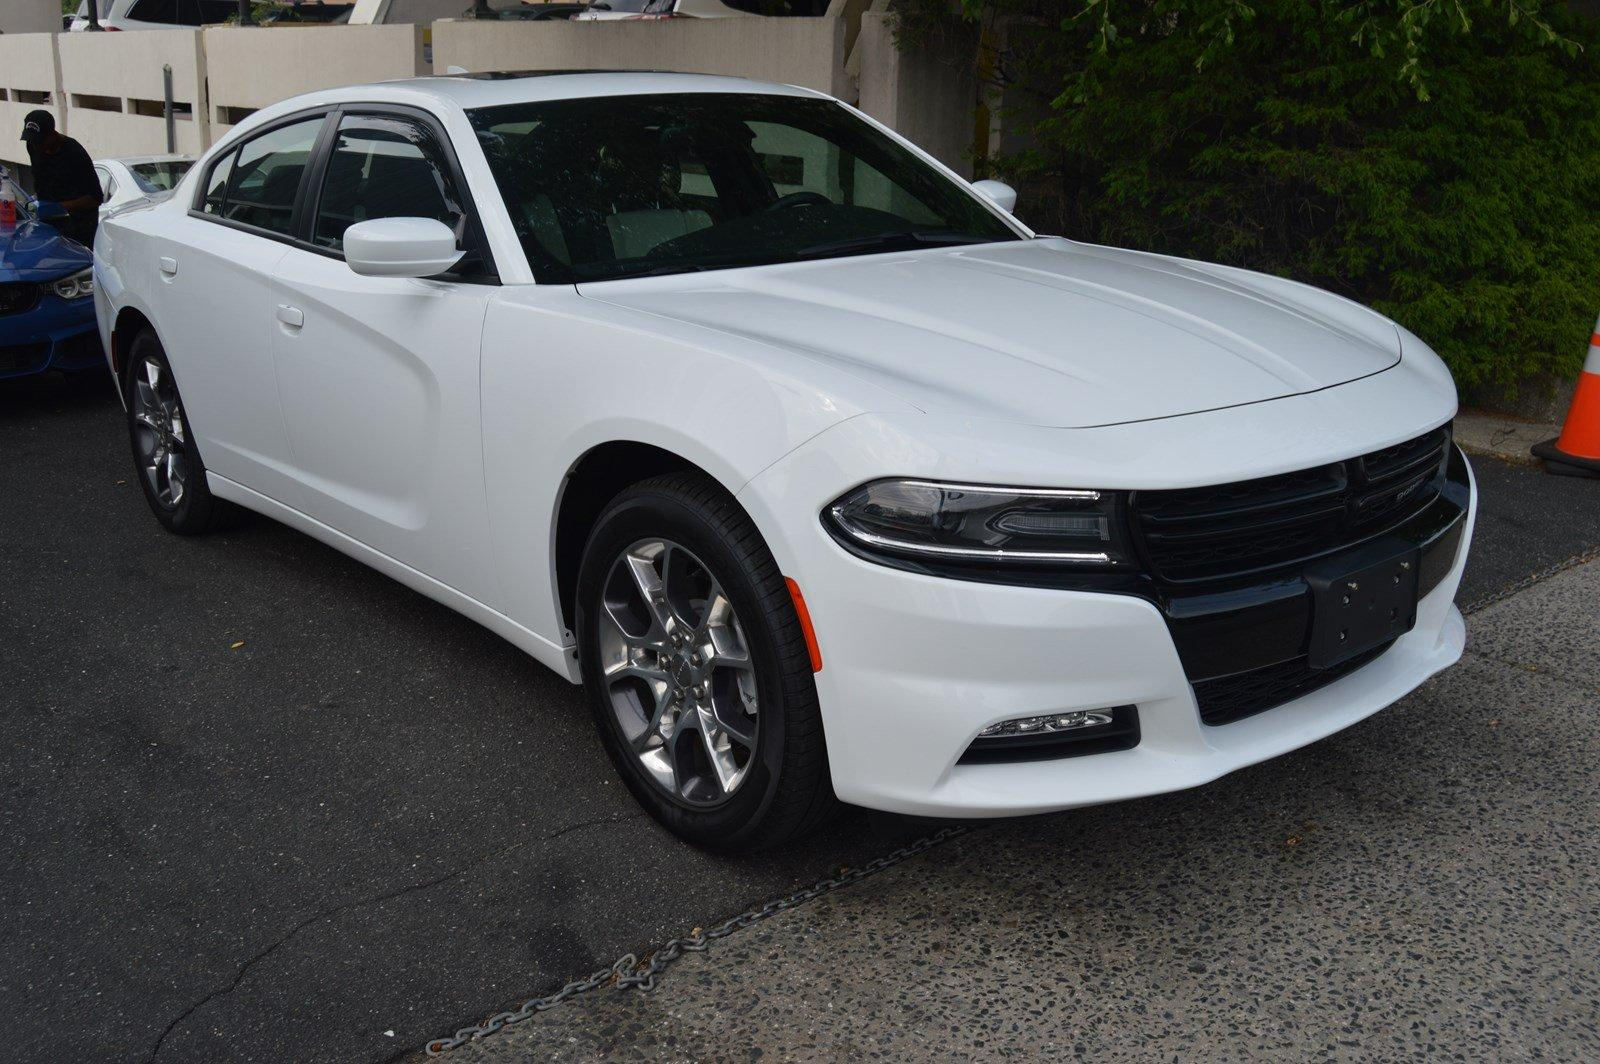 Used-2016-Dodge-Charger-SXT-AWD-(Navi,Sunroof/Leather)